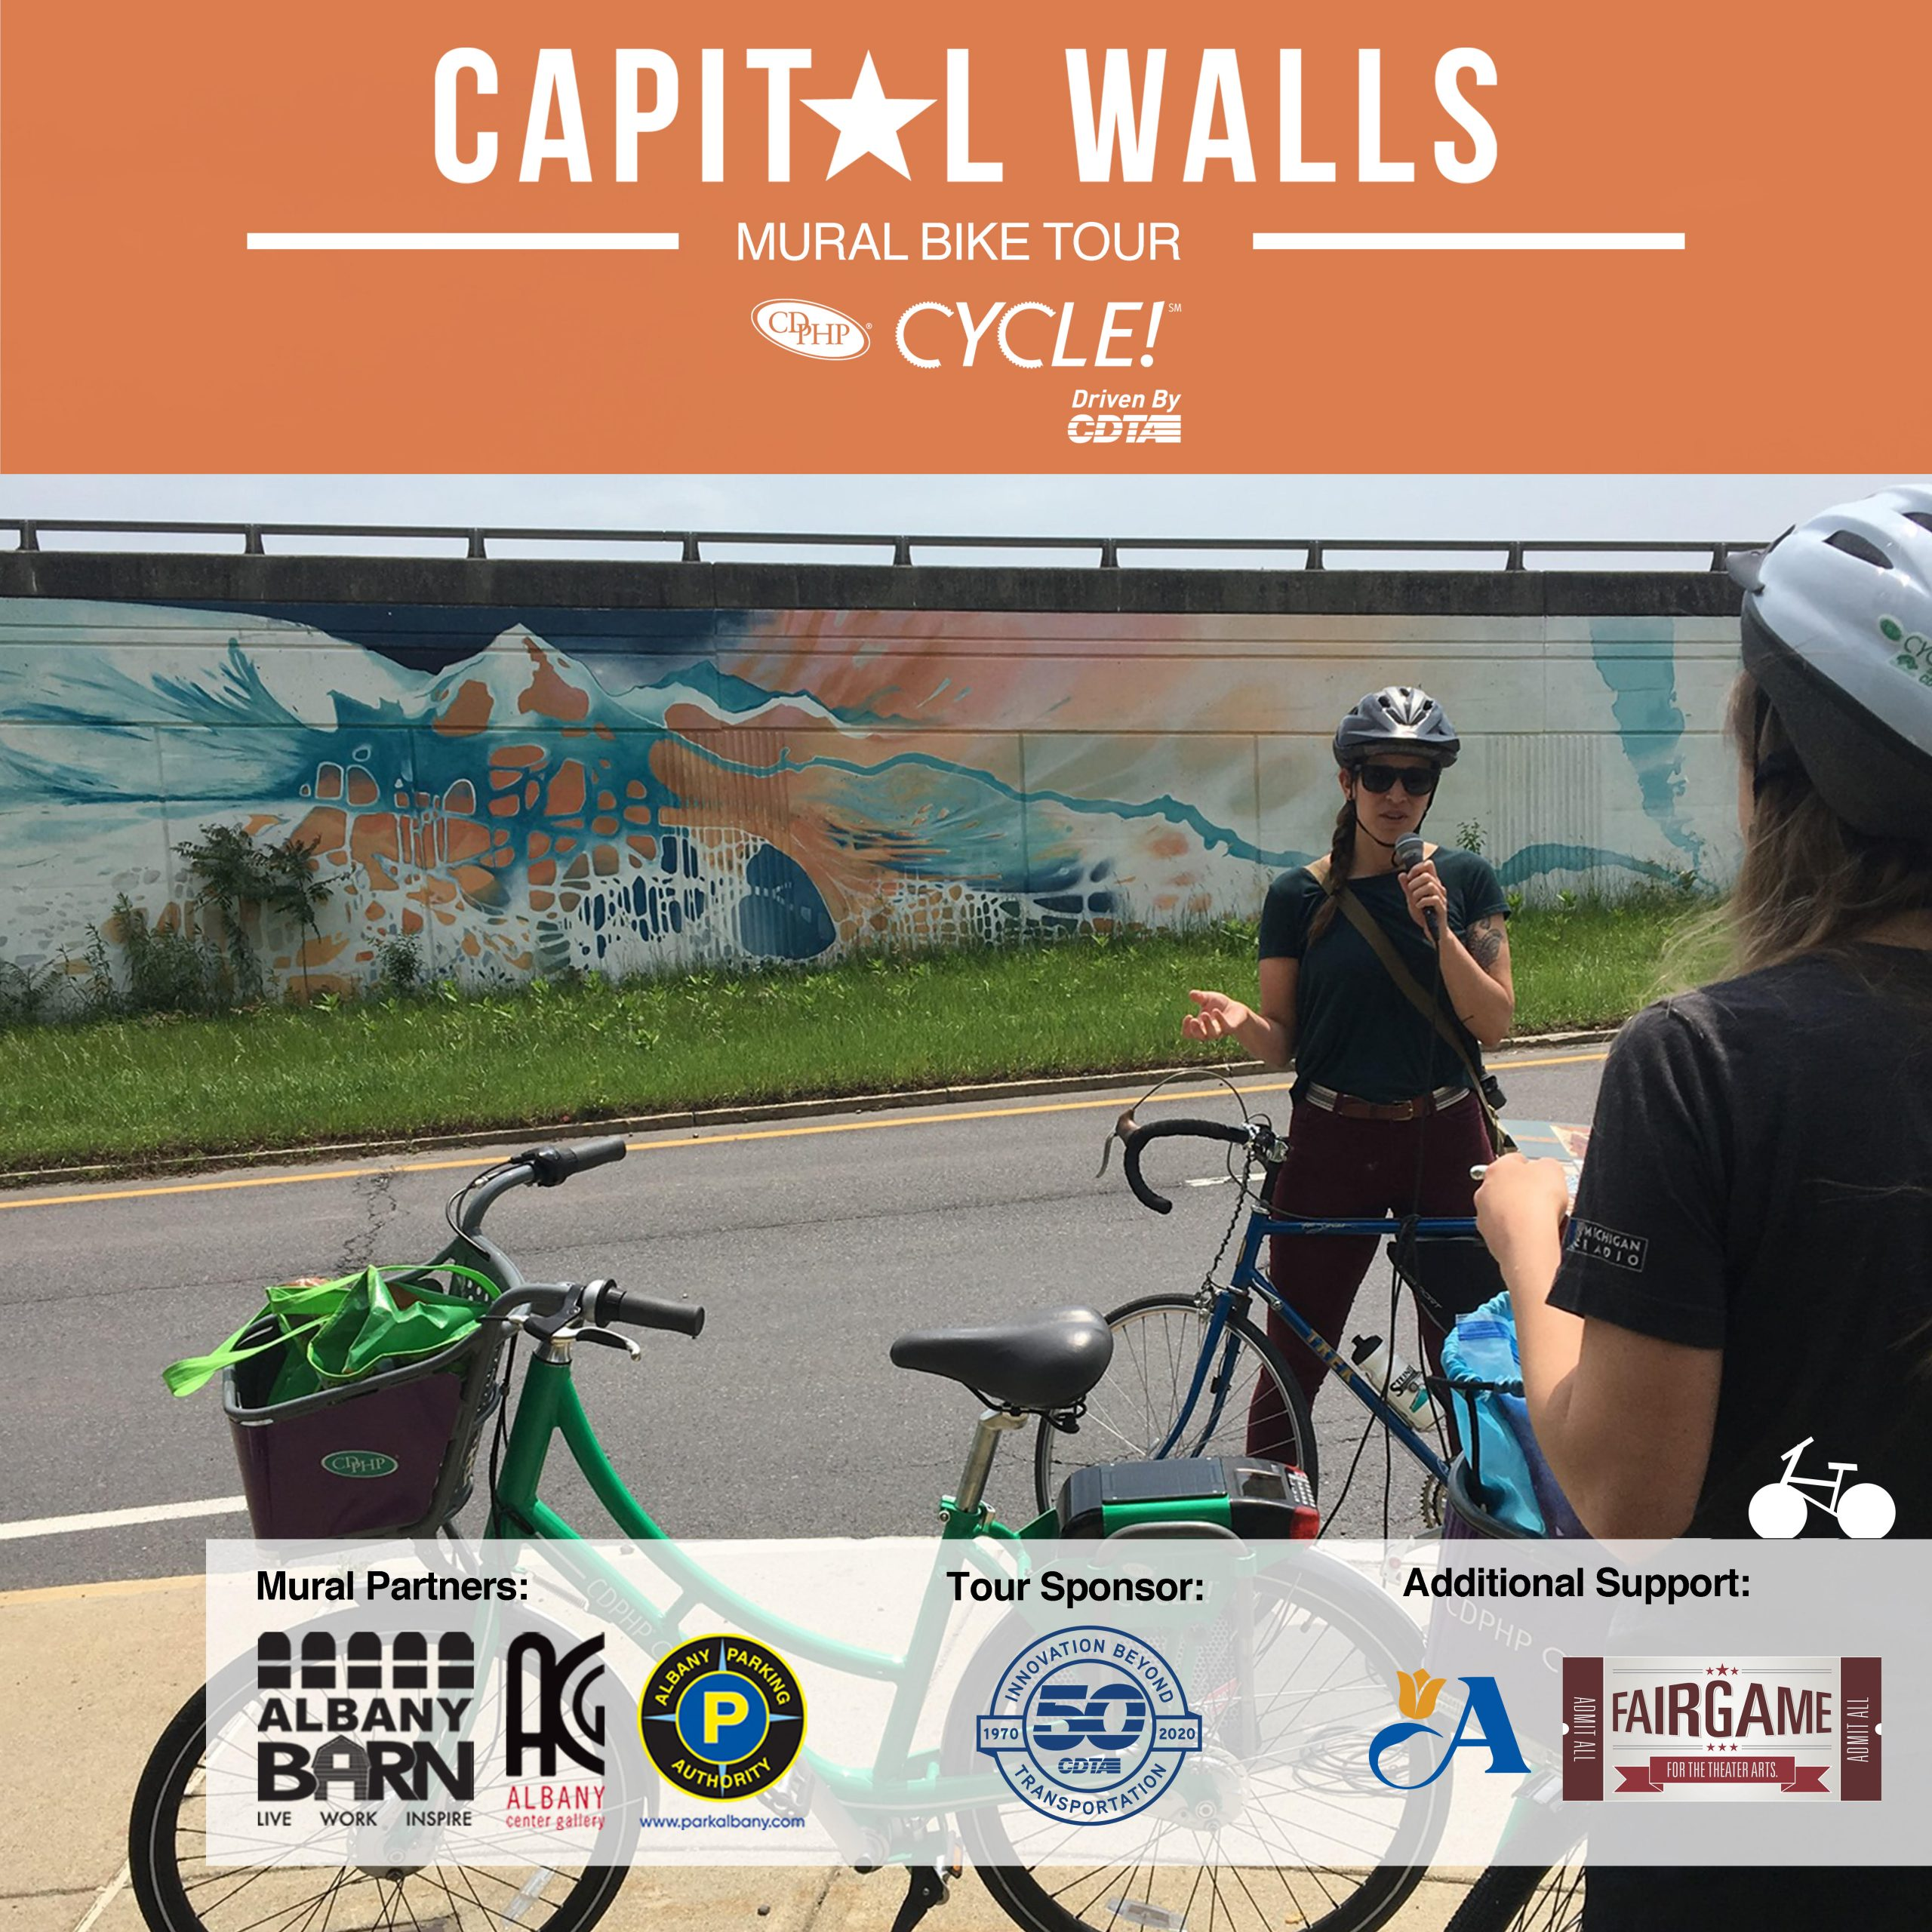 The Capital Walls Mural Bike Tour Is Back!